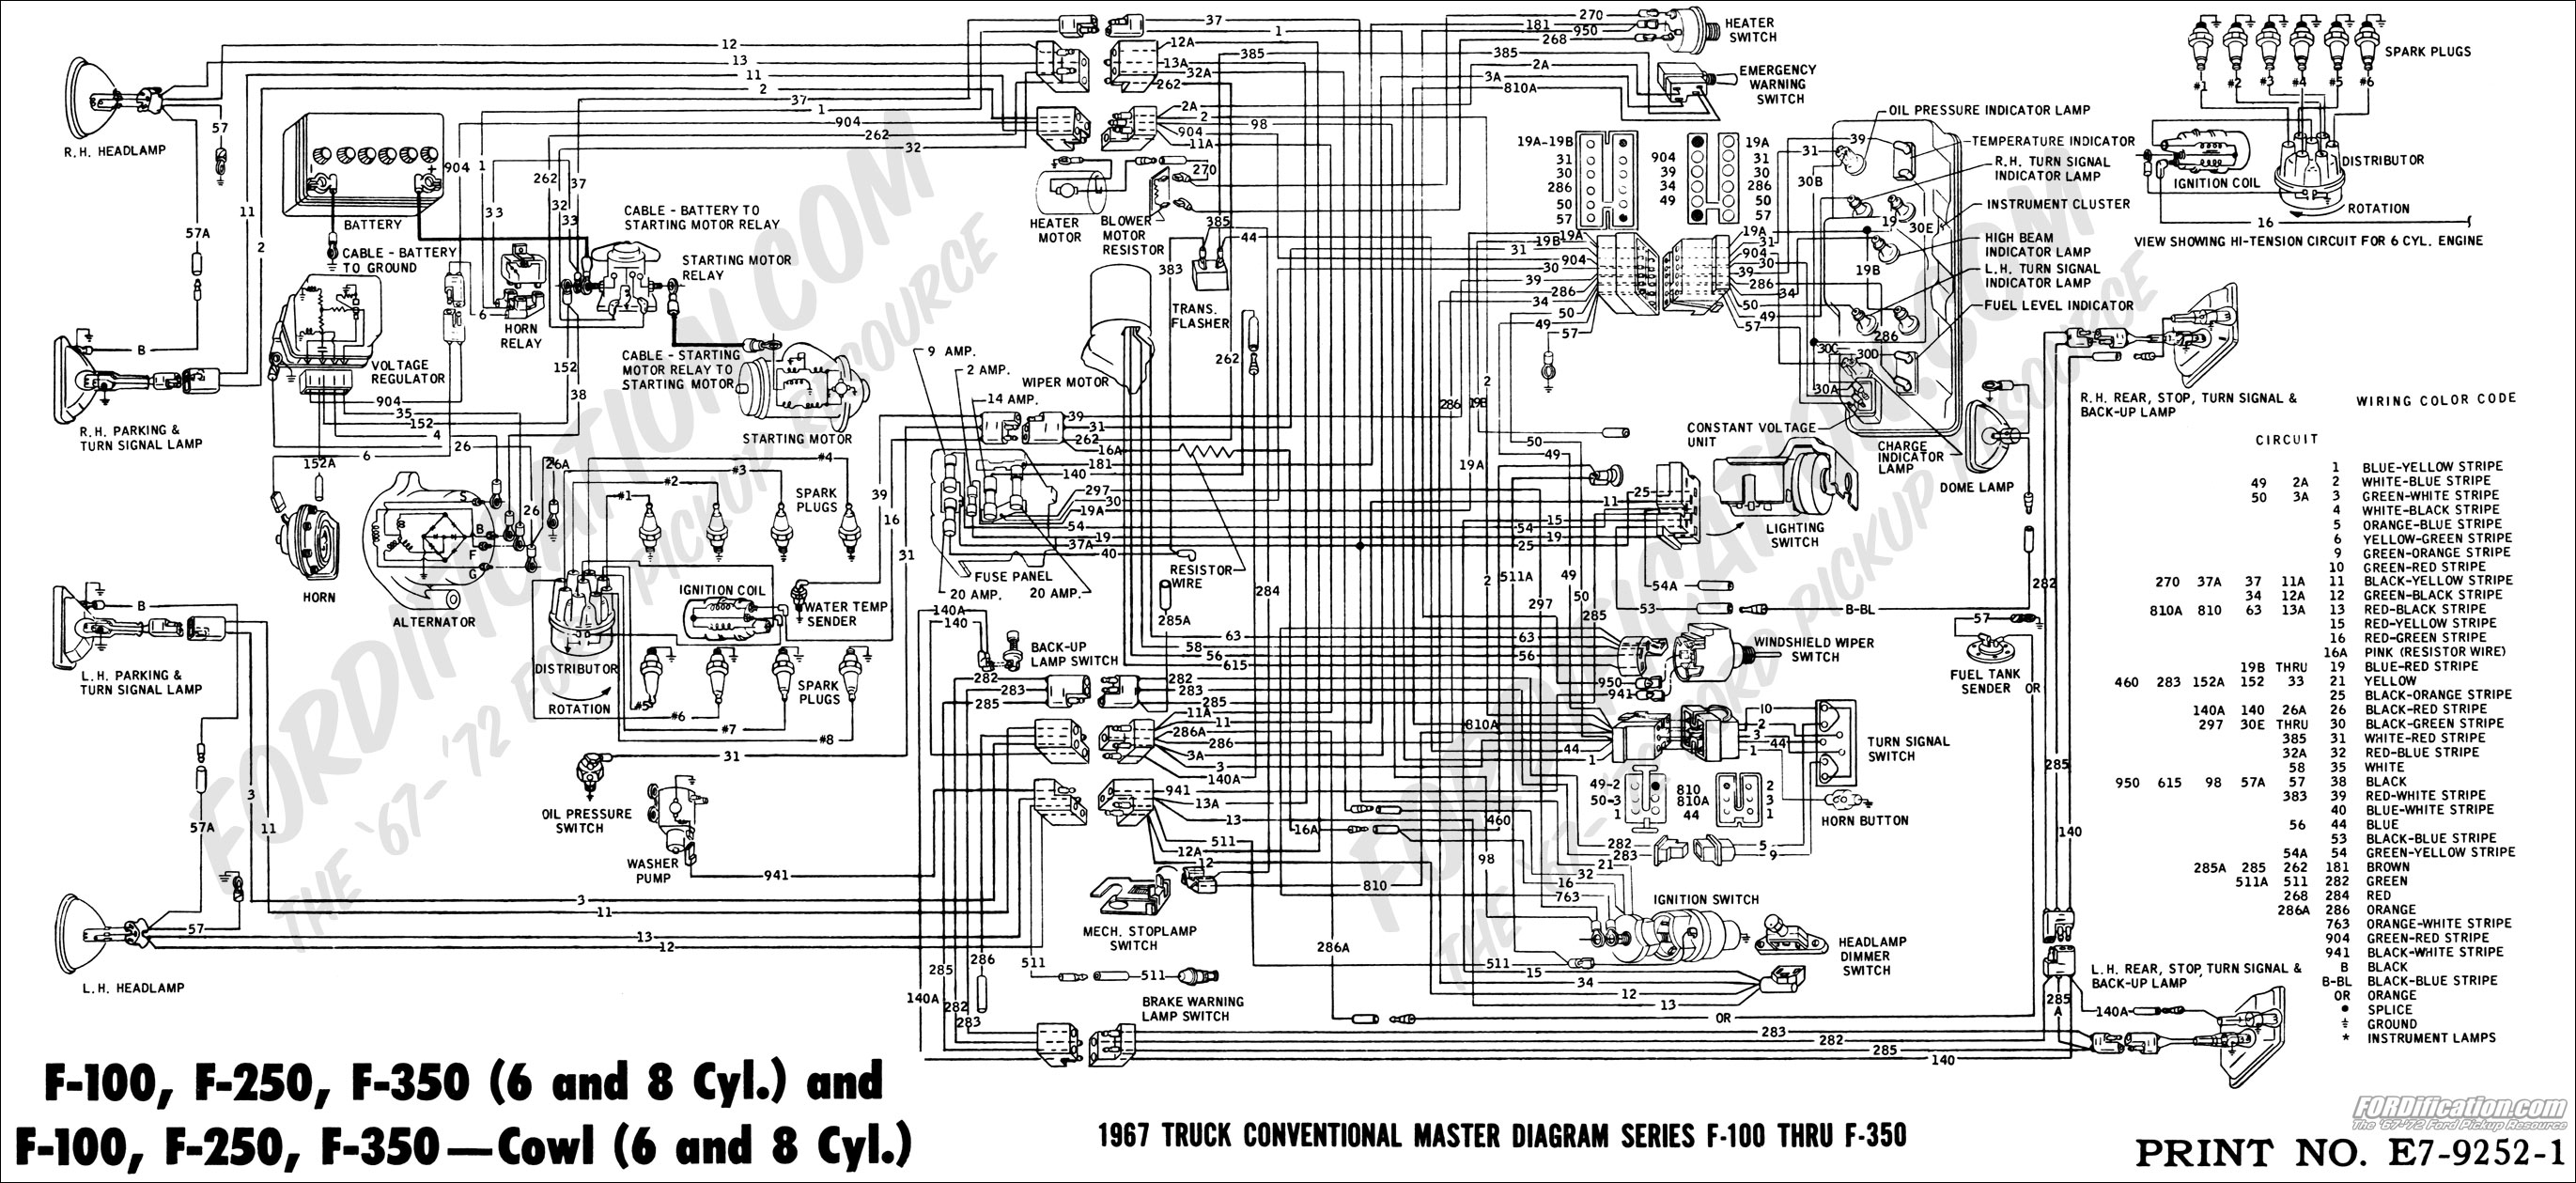 67masterdiagram 93 ford f 350 trailer wiring diagram wiring diagram simonand 1999 ford f450 wiring diagram at creativeand.co